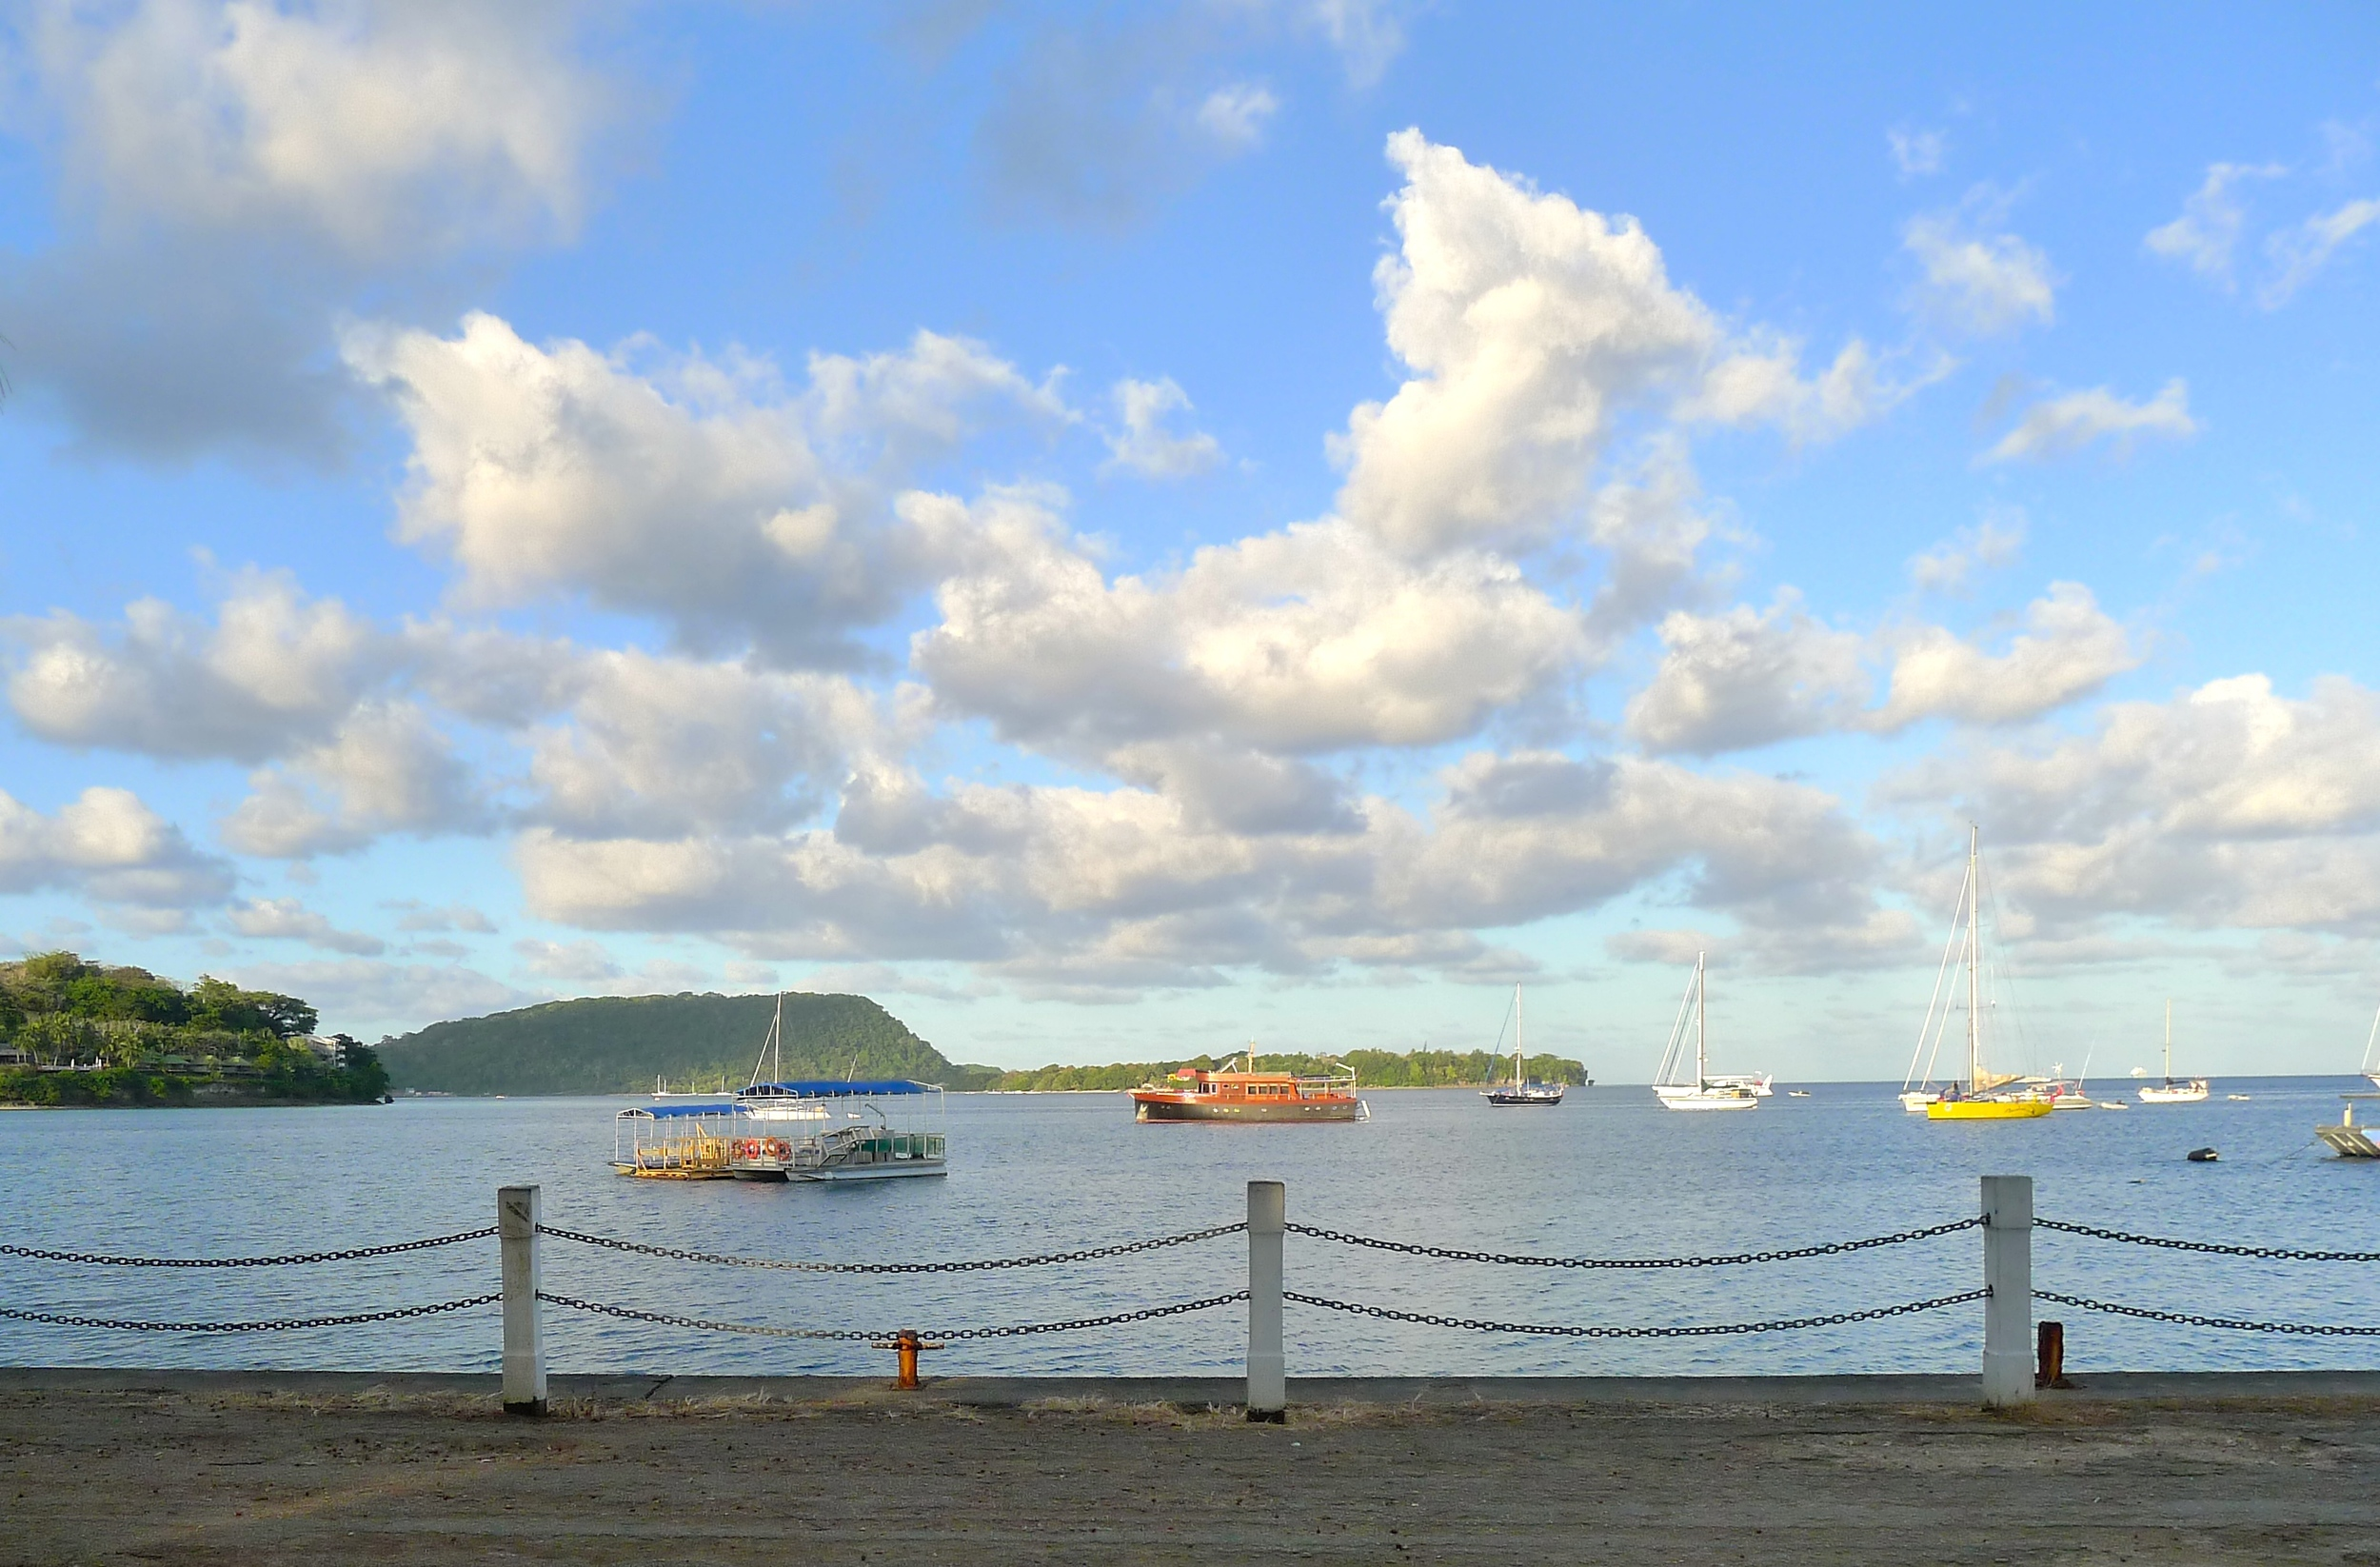 The same view of the harbor in Port Vila, Vanuatu during our trip in 2013.